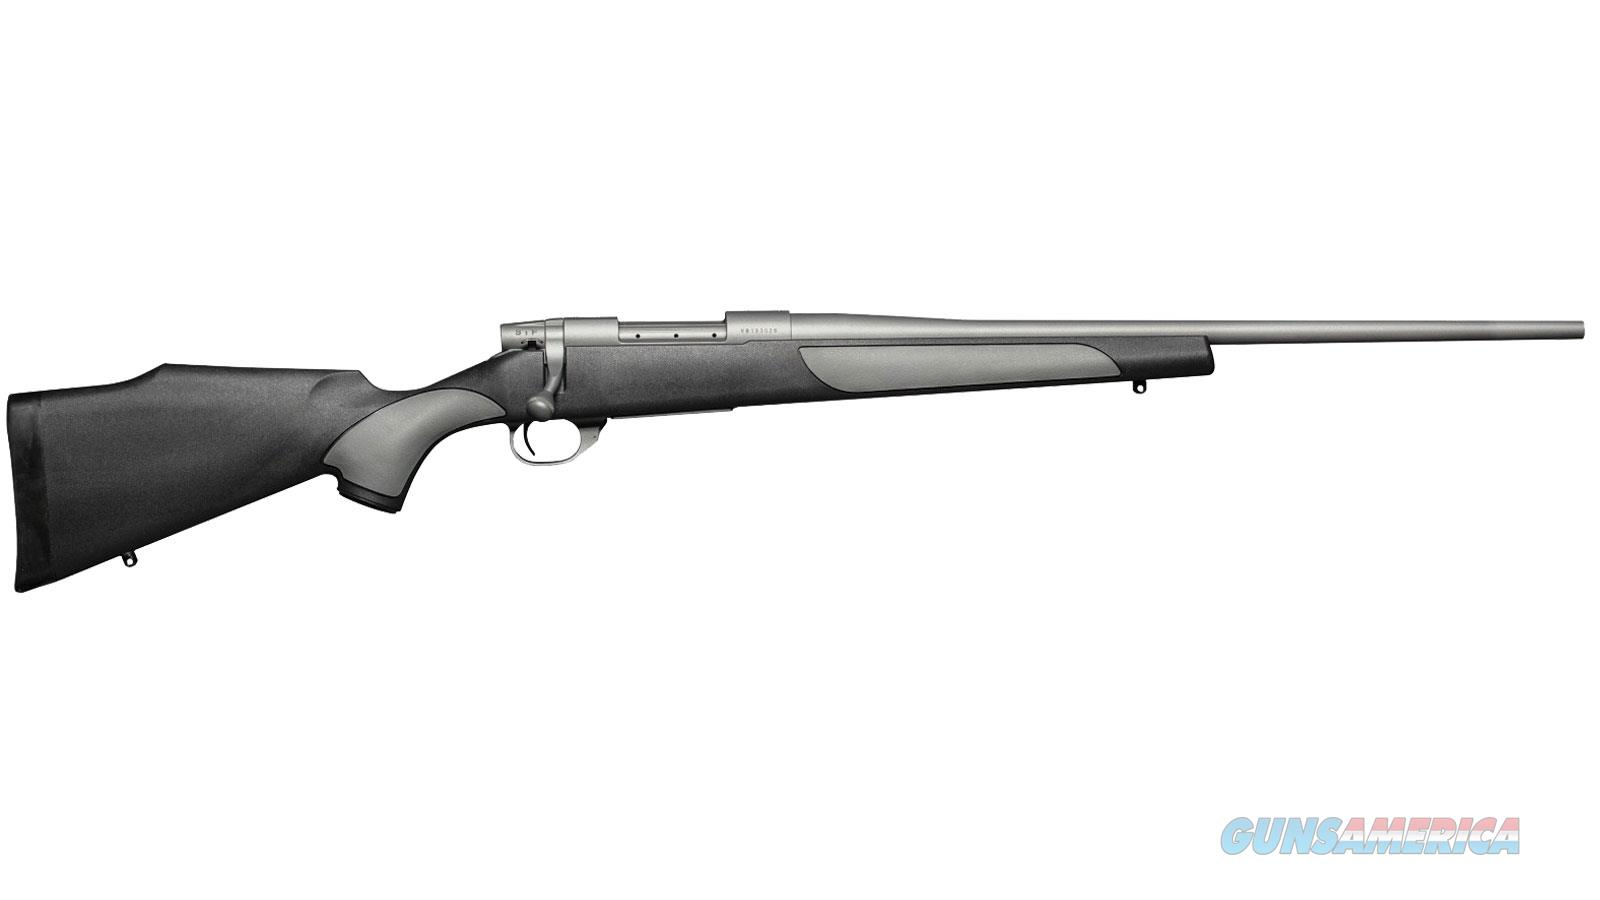 "WEATHERBY VGD WTHRGRD 22-250 24"" 4RD VTG222RR4O  Guns > Rifles > Weatherby Rifles > Sporting"